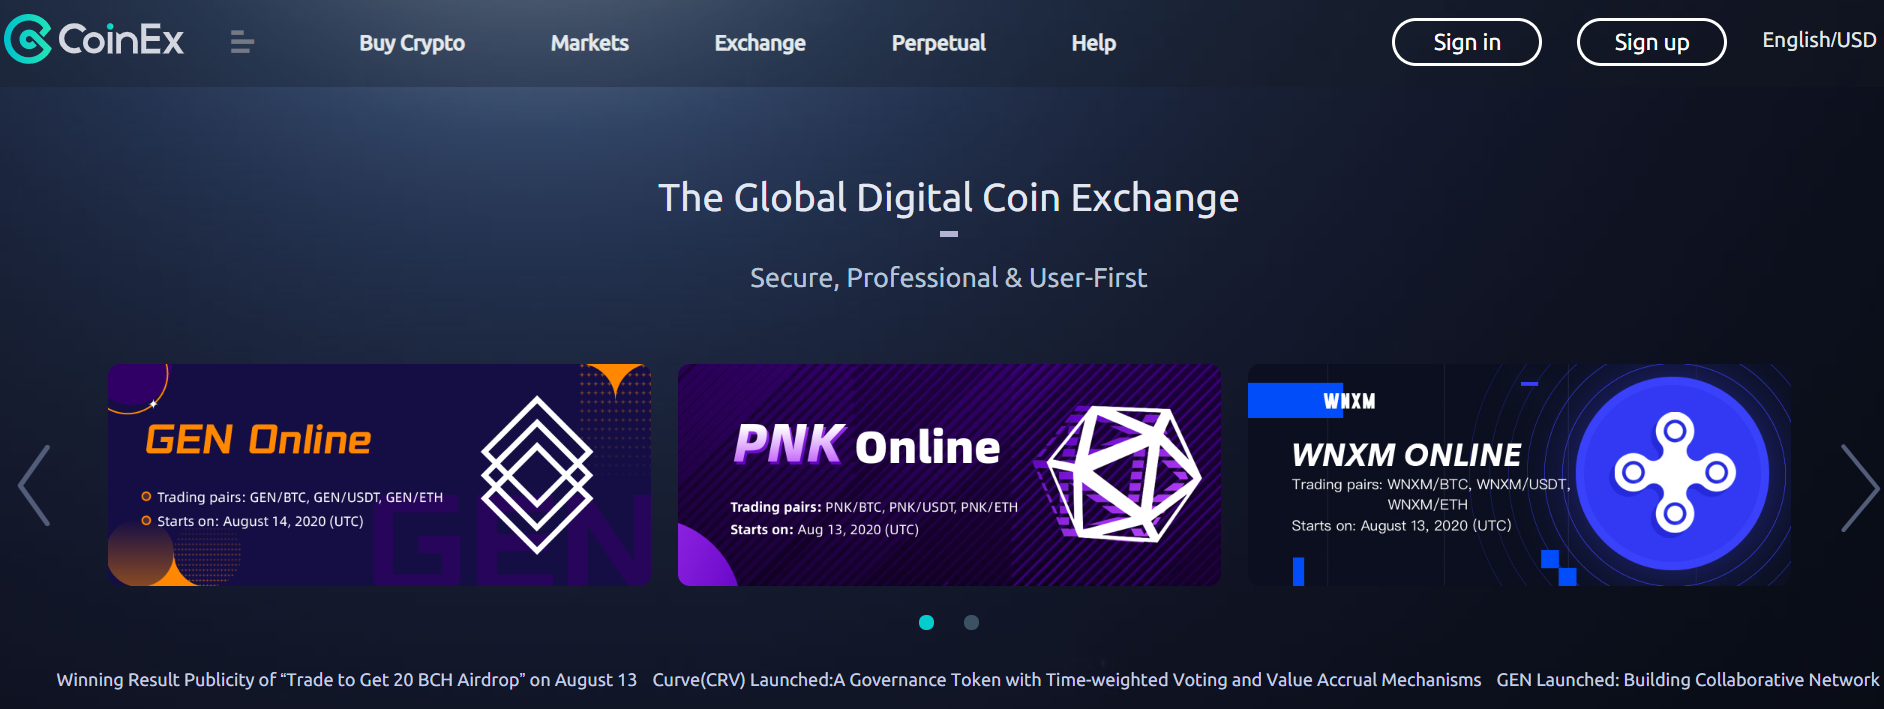 COINEX REVIEW - Landing Page